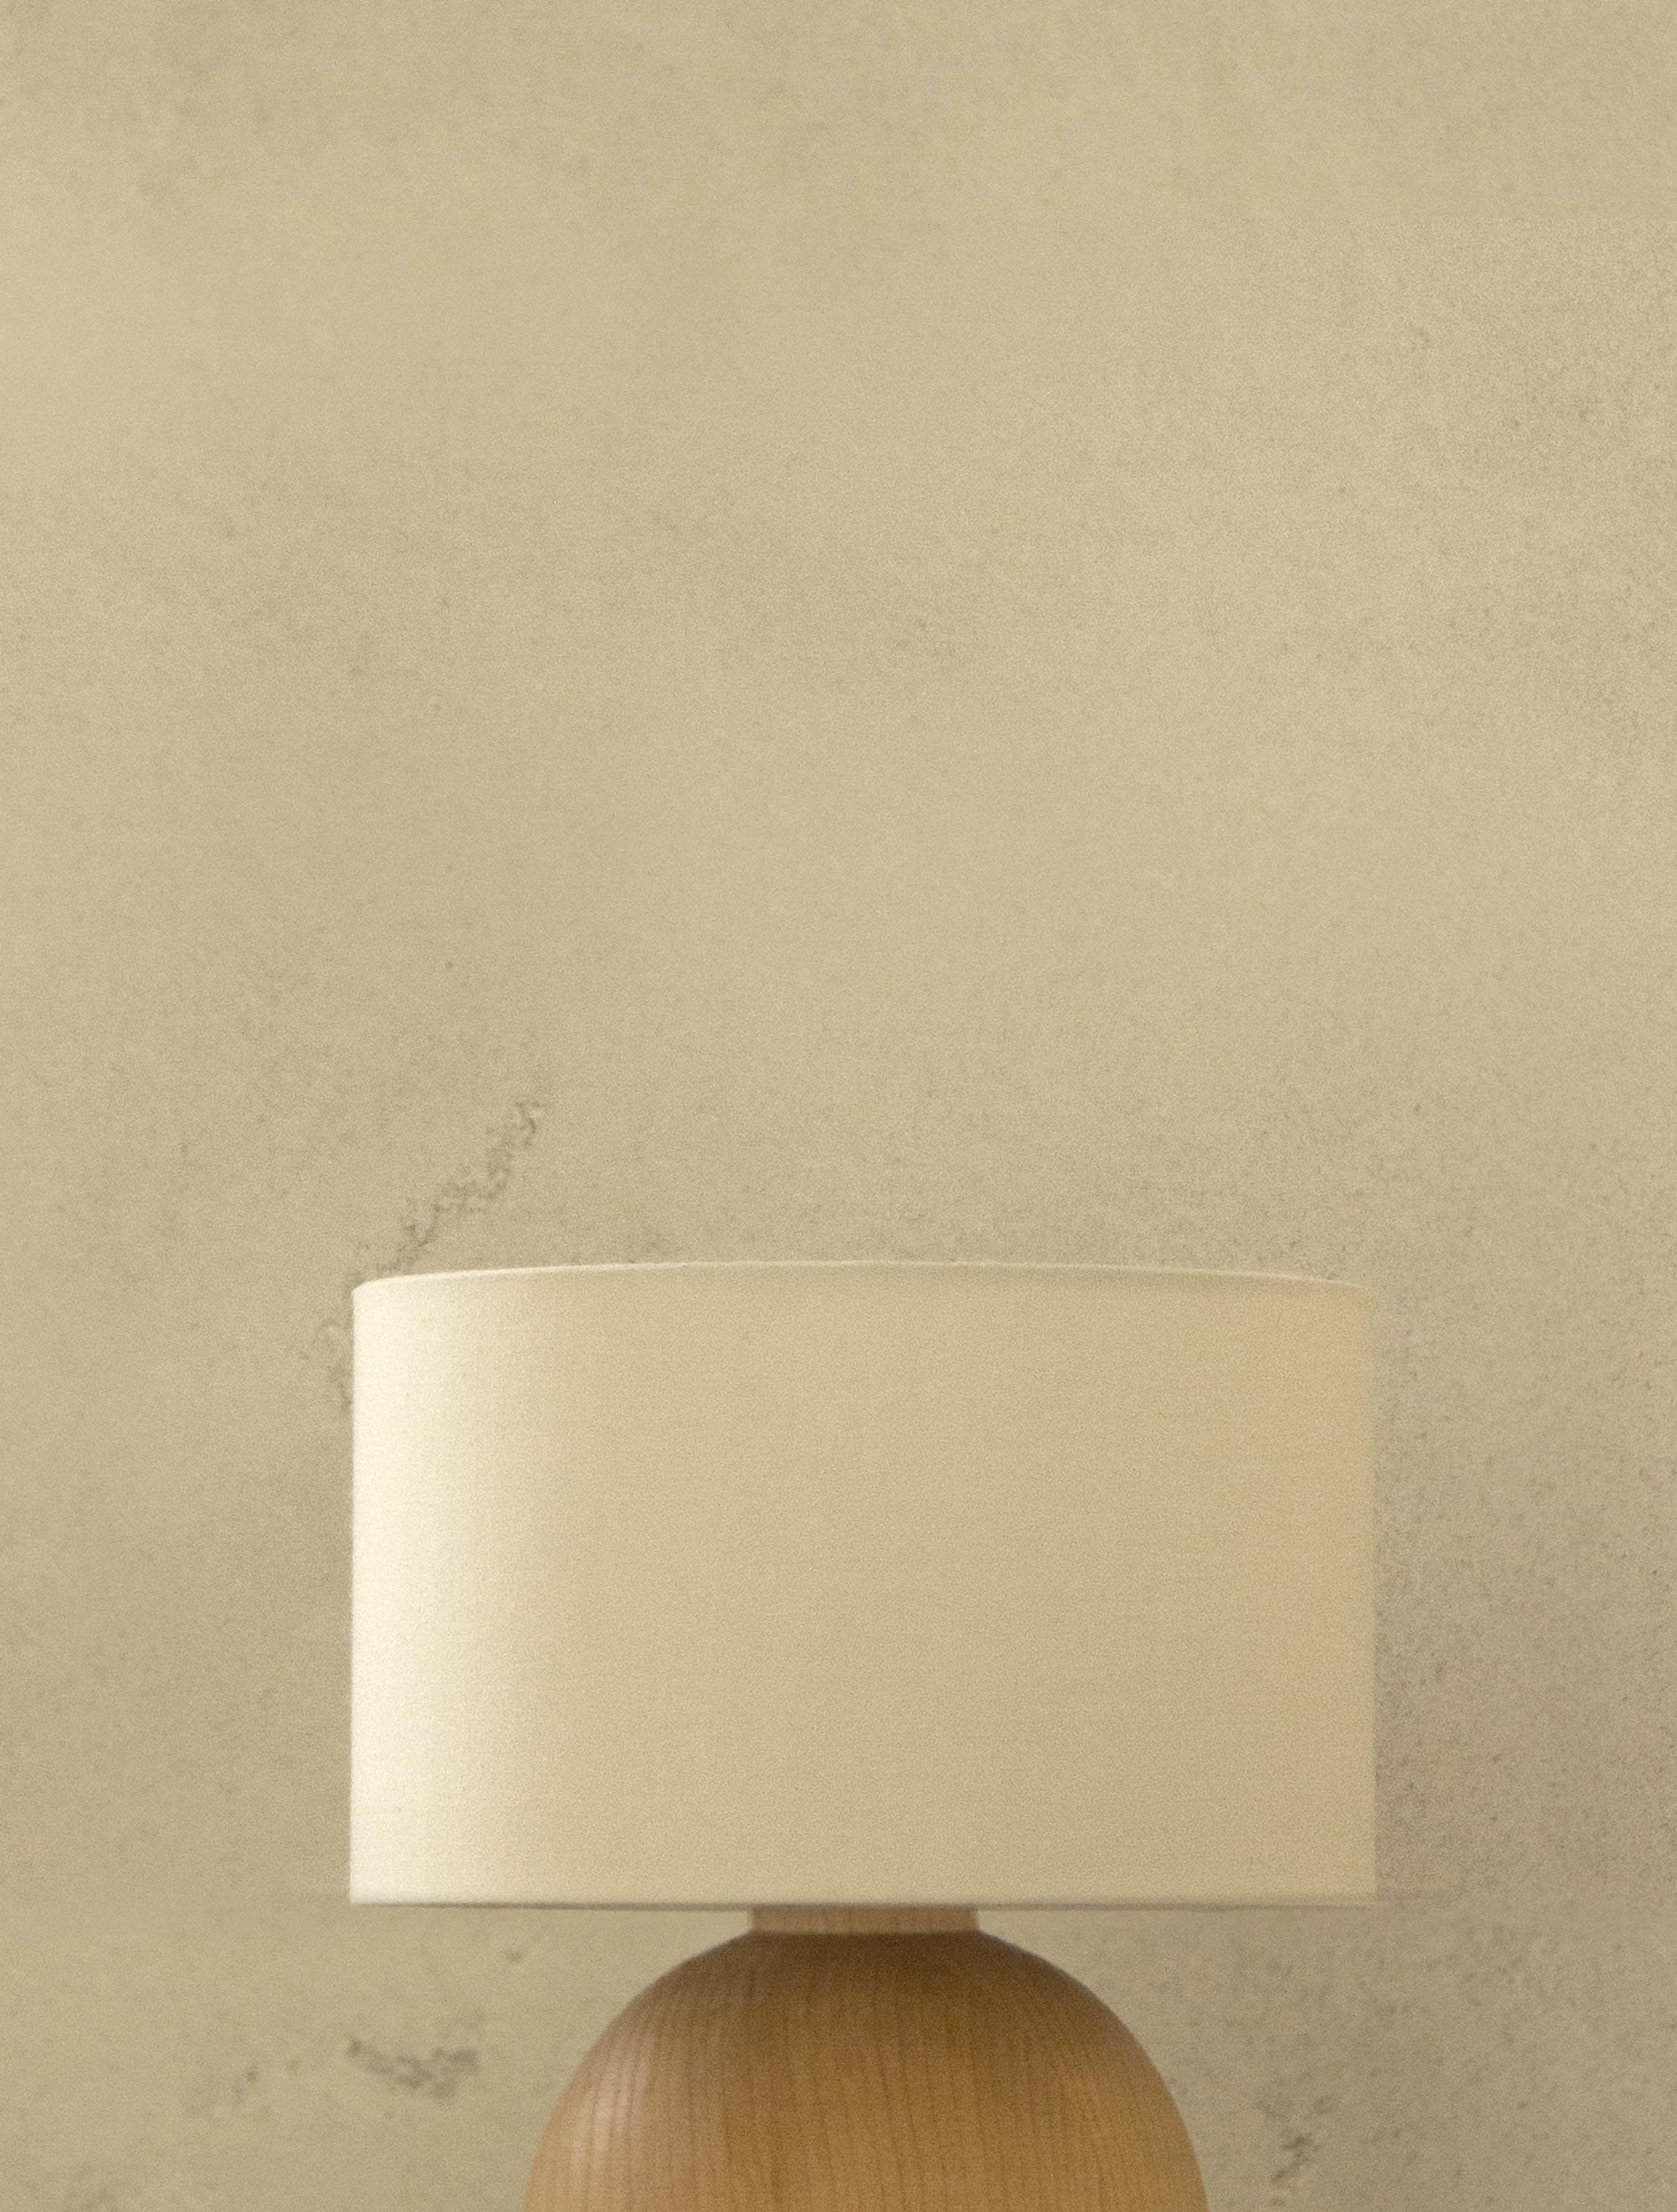 wood lamp shade_SH003